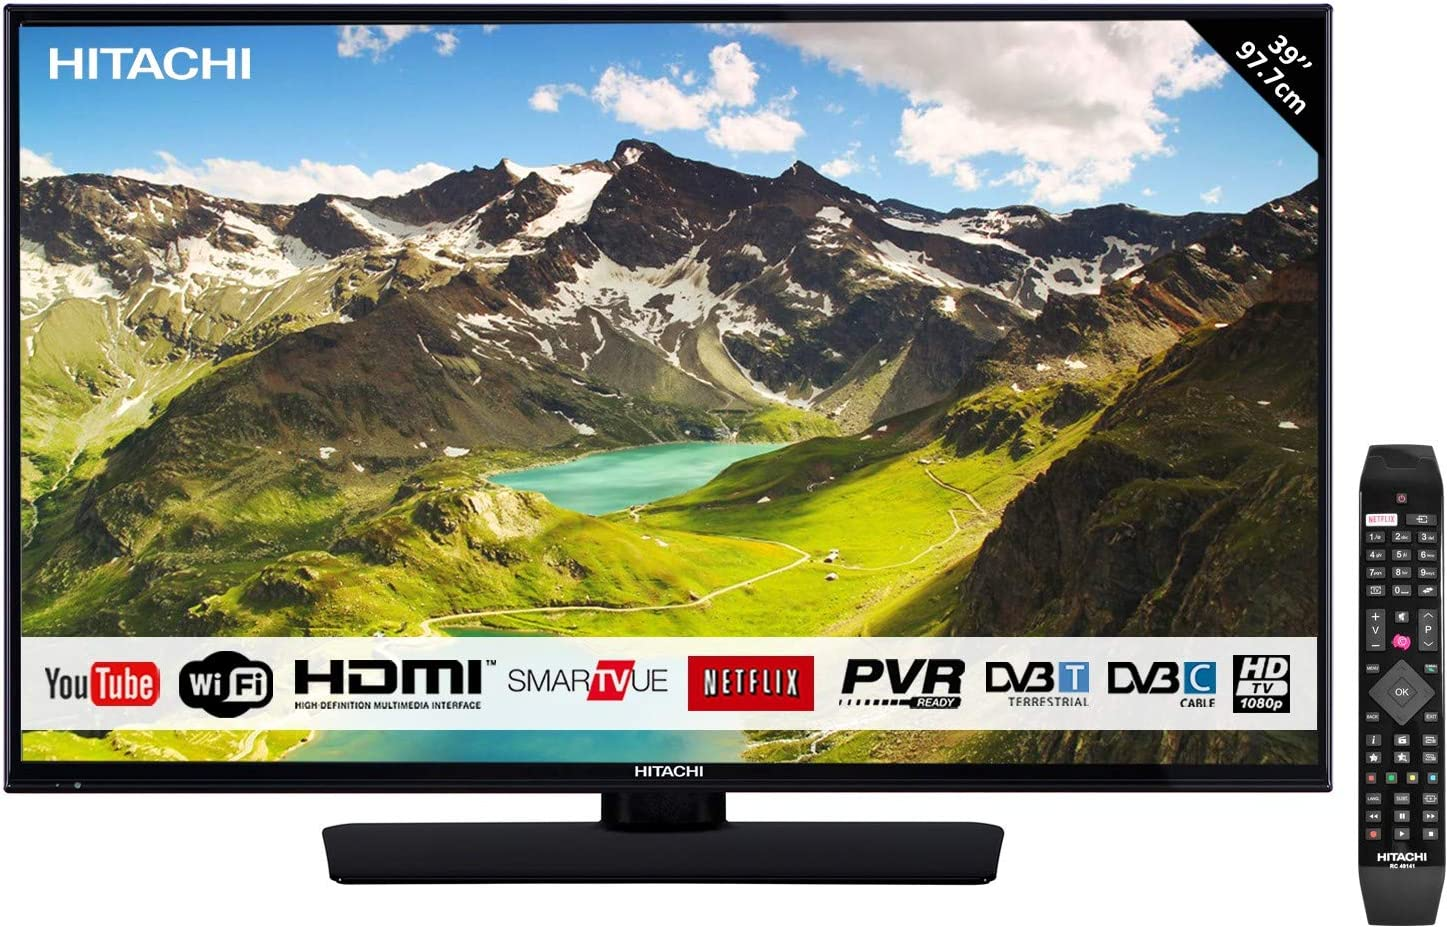 Led TV hitachi 39 39hb4t62 Full HD / Smart TV / WiFi / hdmi x 3 / USB...: Amazon.es: Electrónica